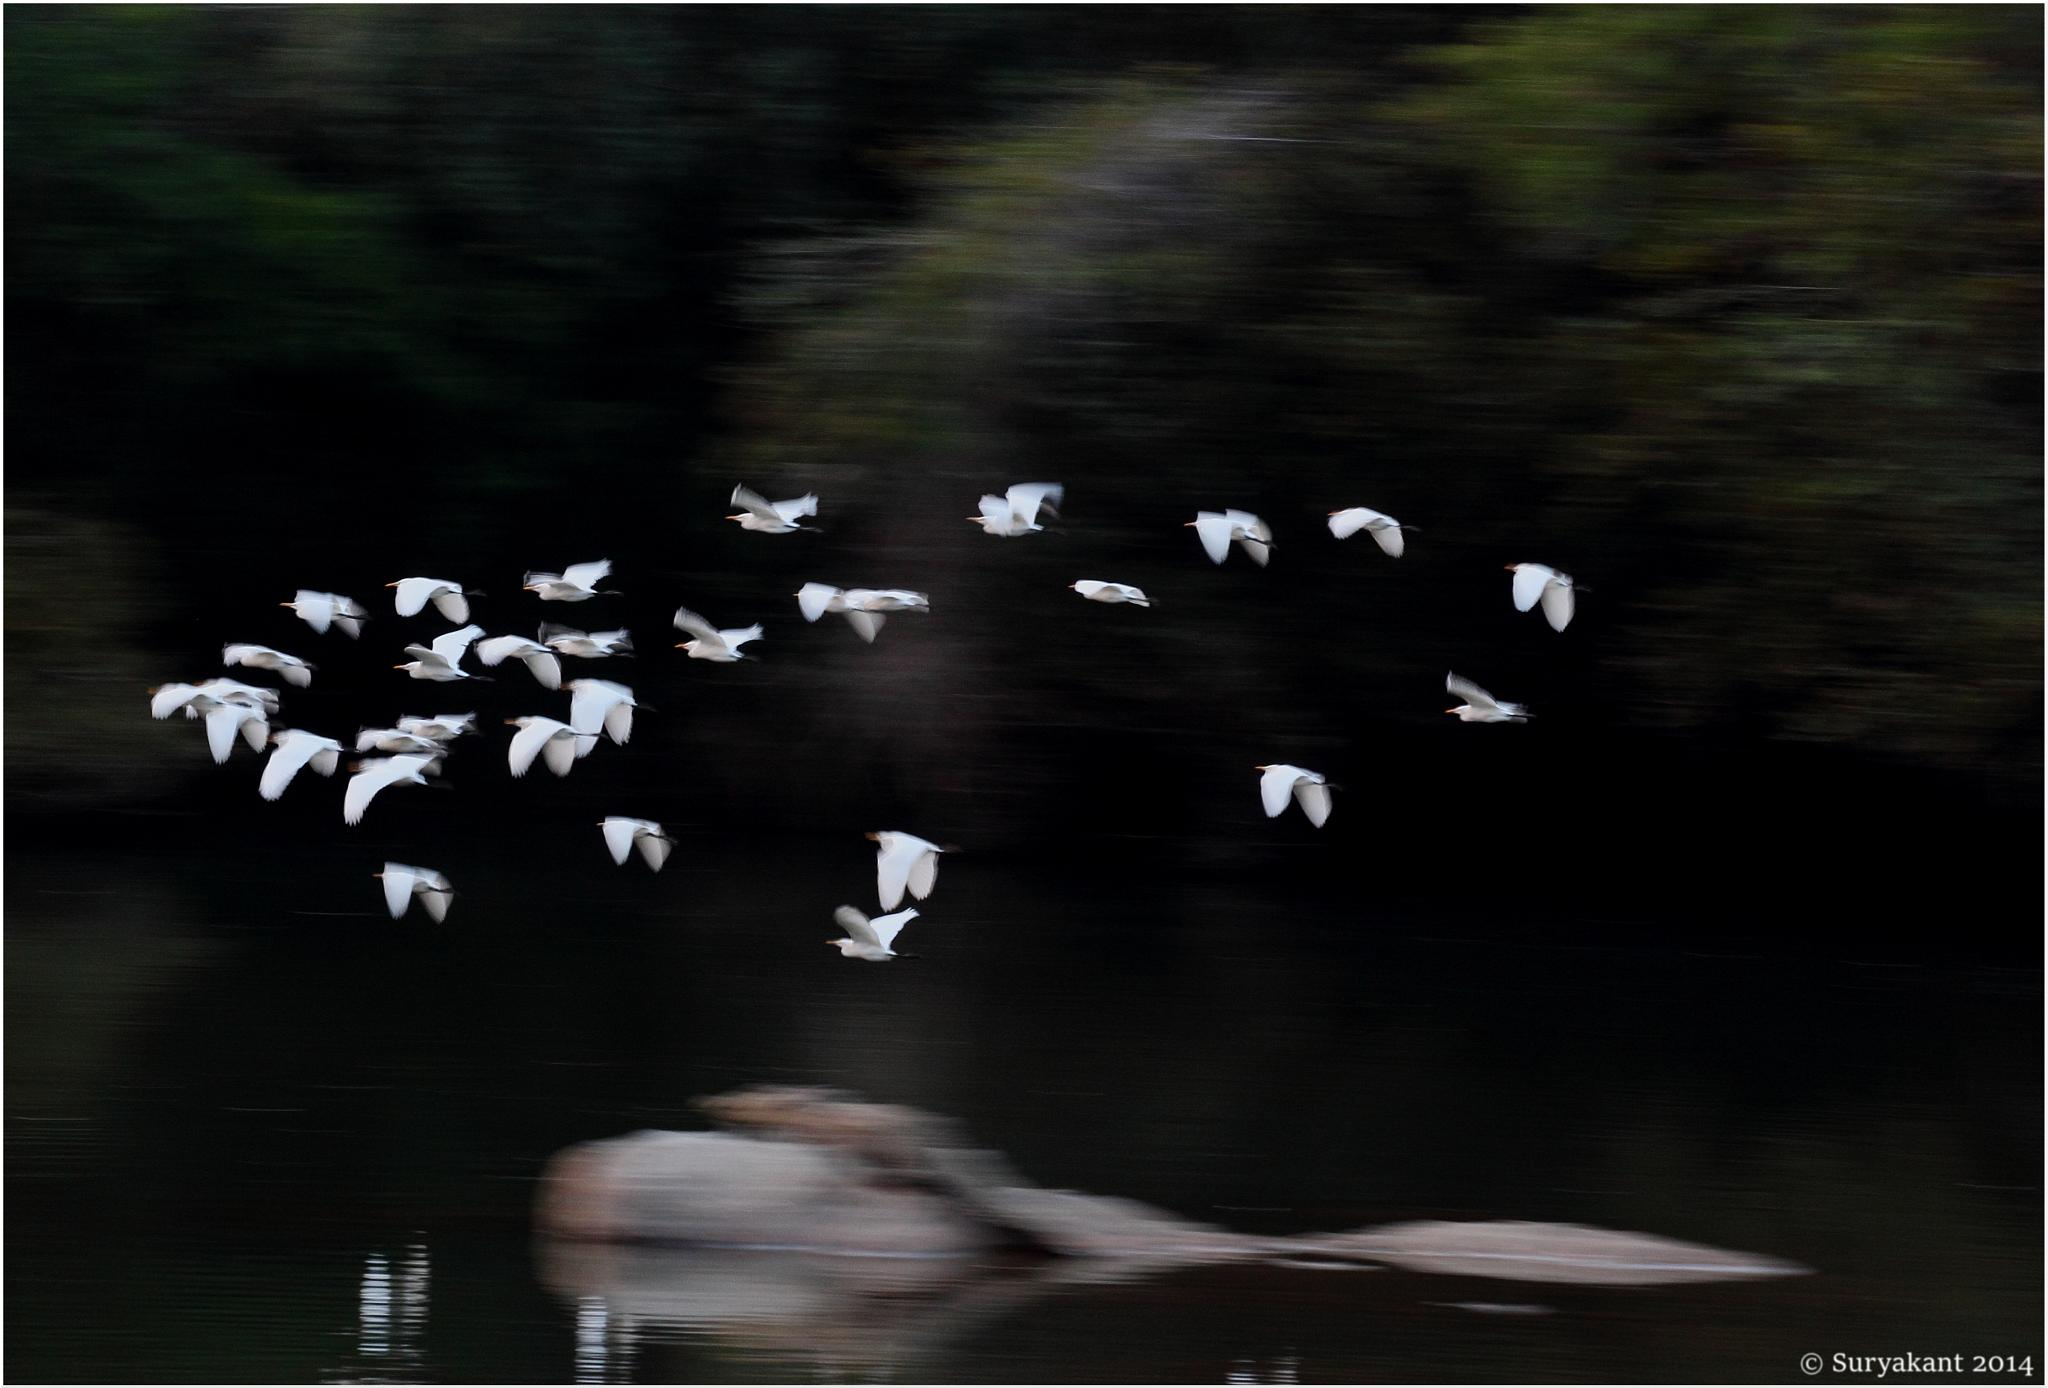 Panning|Egrets in Flight by Suryakant A Sajjan